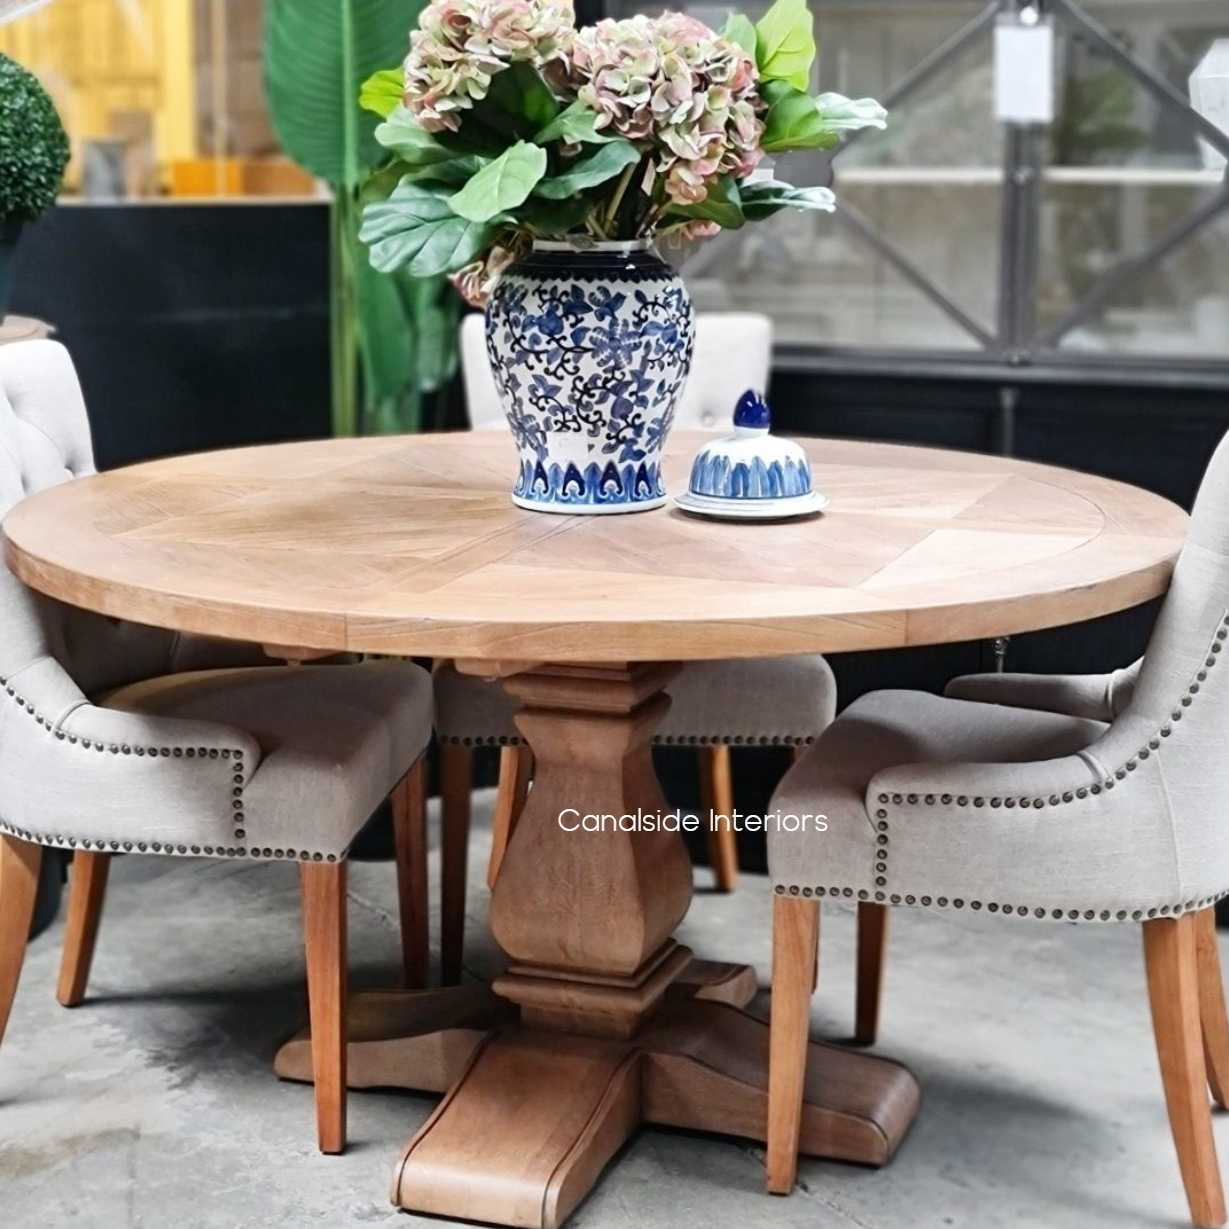 Hampton Bay Parquetry Round Dining Table tables, hamptons, hampton table, provincial, plantation, dining tables, trestle base, dining room